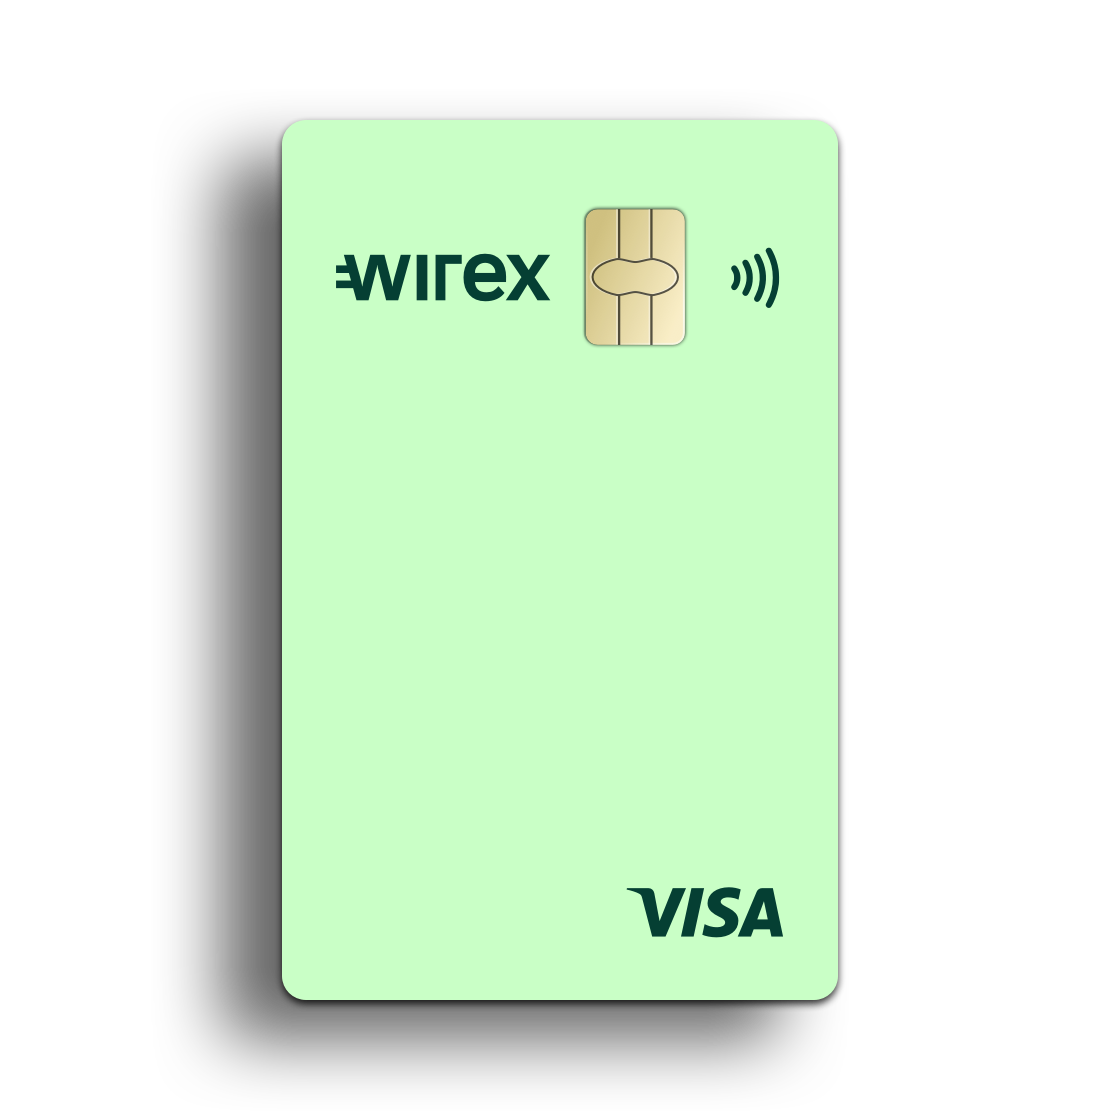 Crypto & Fiat Multi-Currency Accounts with Visa Card | Wirex